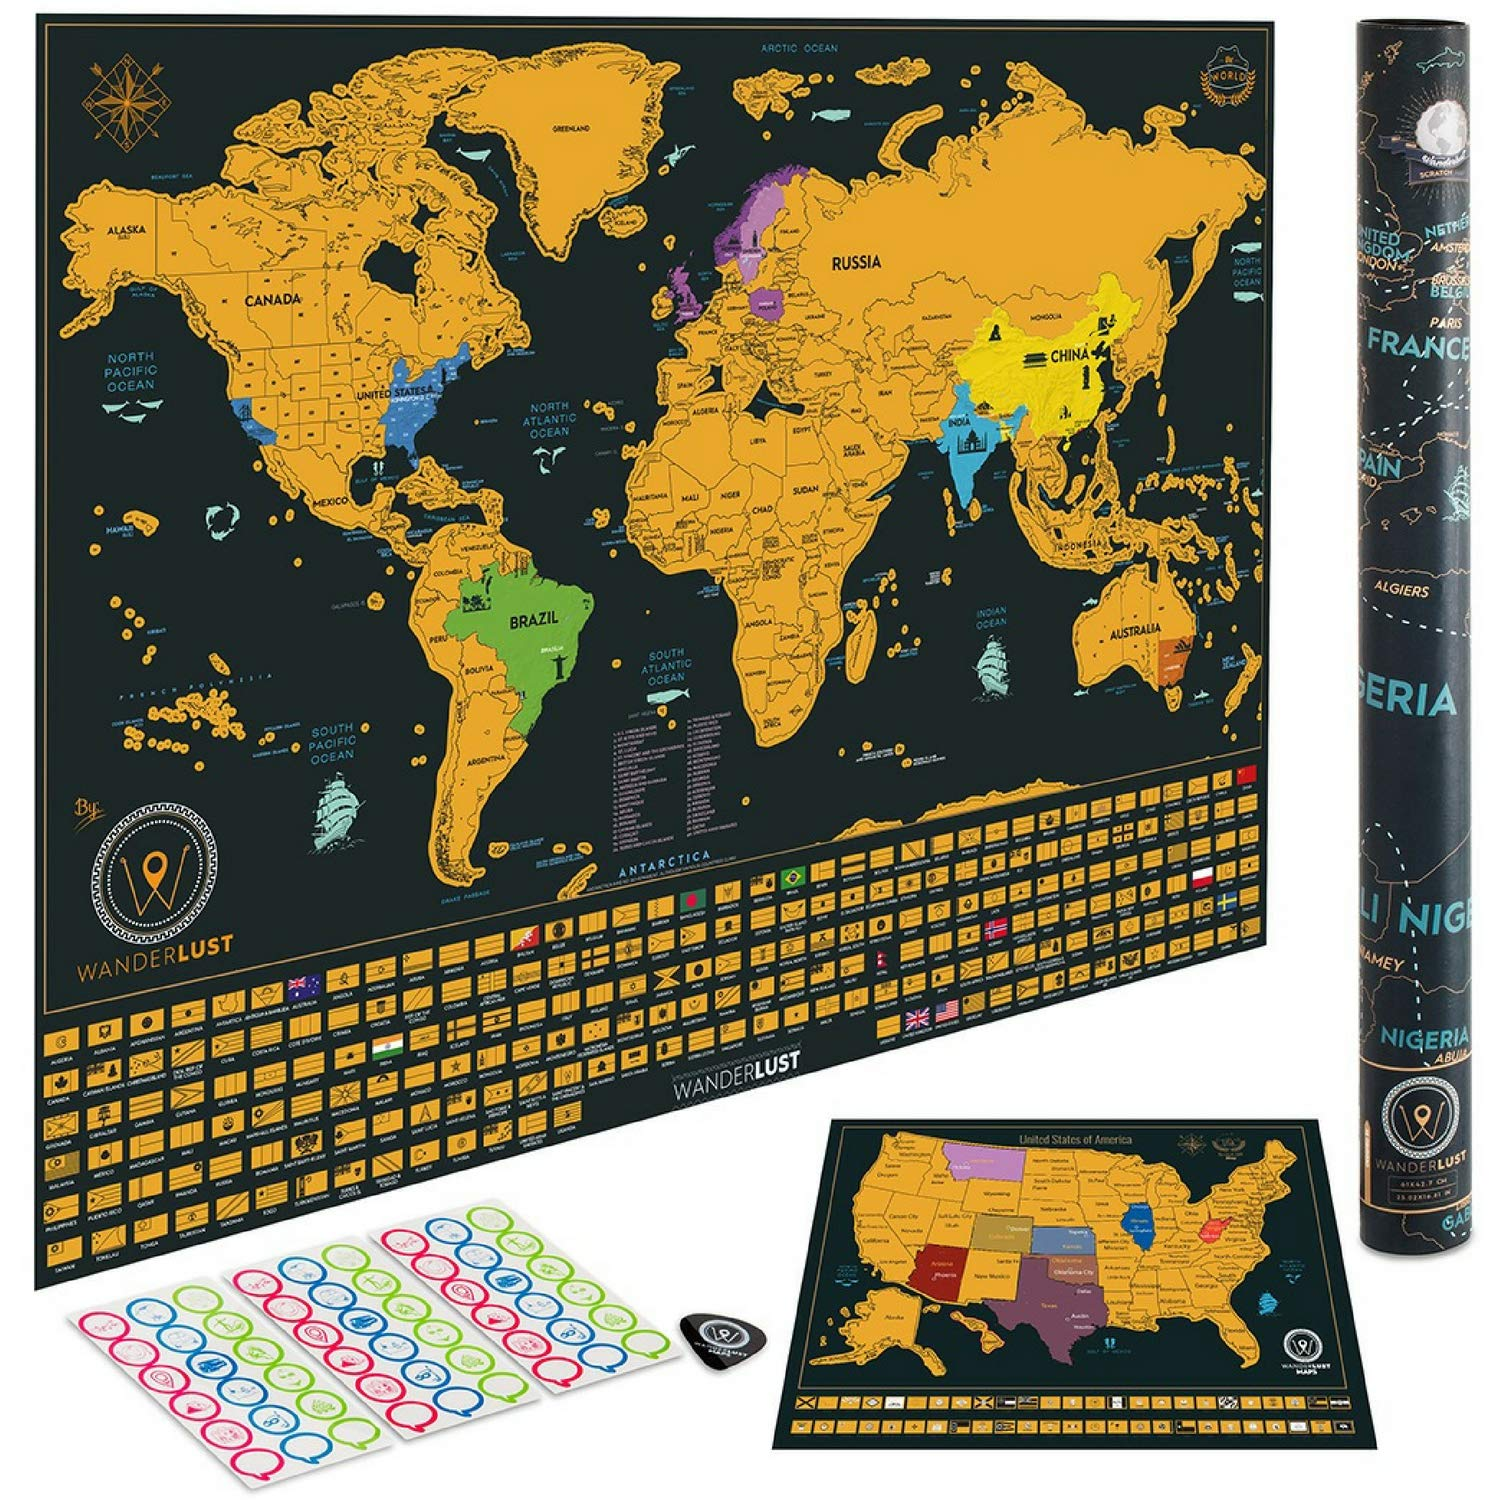 Scratch Off World Map + Premium Scratch Off USA Map - Deluxe Tube Can Be Gift Messaged and Includes Precision Scratch Tool and Travel Memory Stickers, by Wanderlust Maps by W WANDERLUST MAPS